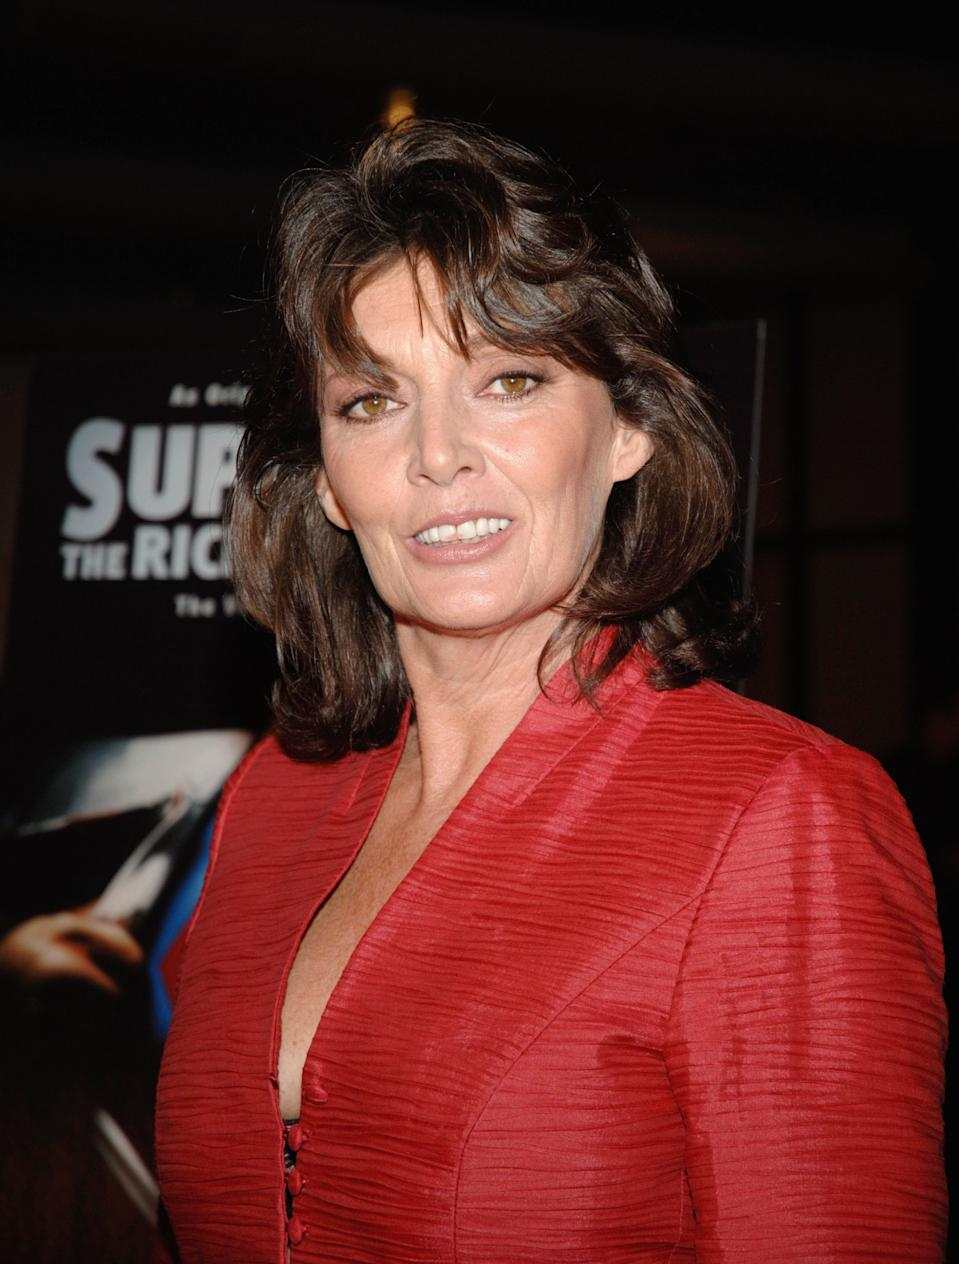 "WEST HOLLYWOOD, CA - NOVEMBER 2:  Sarah Douglas attends the Red Carpet Screening of ""Superman II: The Richard Donner Cut"" at the Directors Guild Of America on November 2, 2006 in West Hollywood, California. (Photo by John M. Heller/Getty Images)"